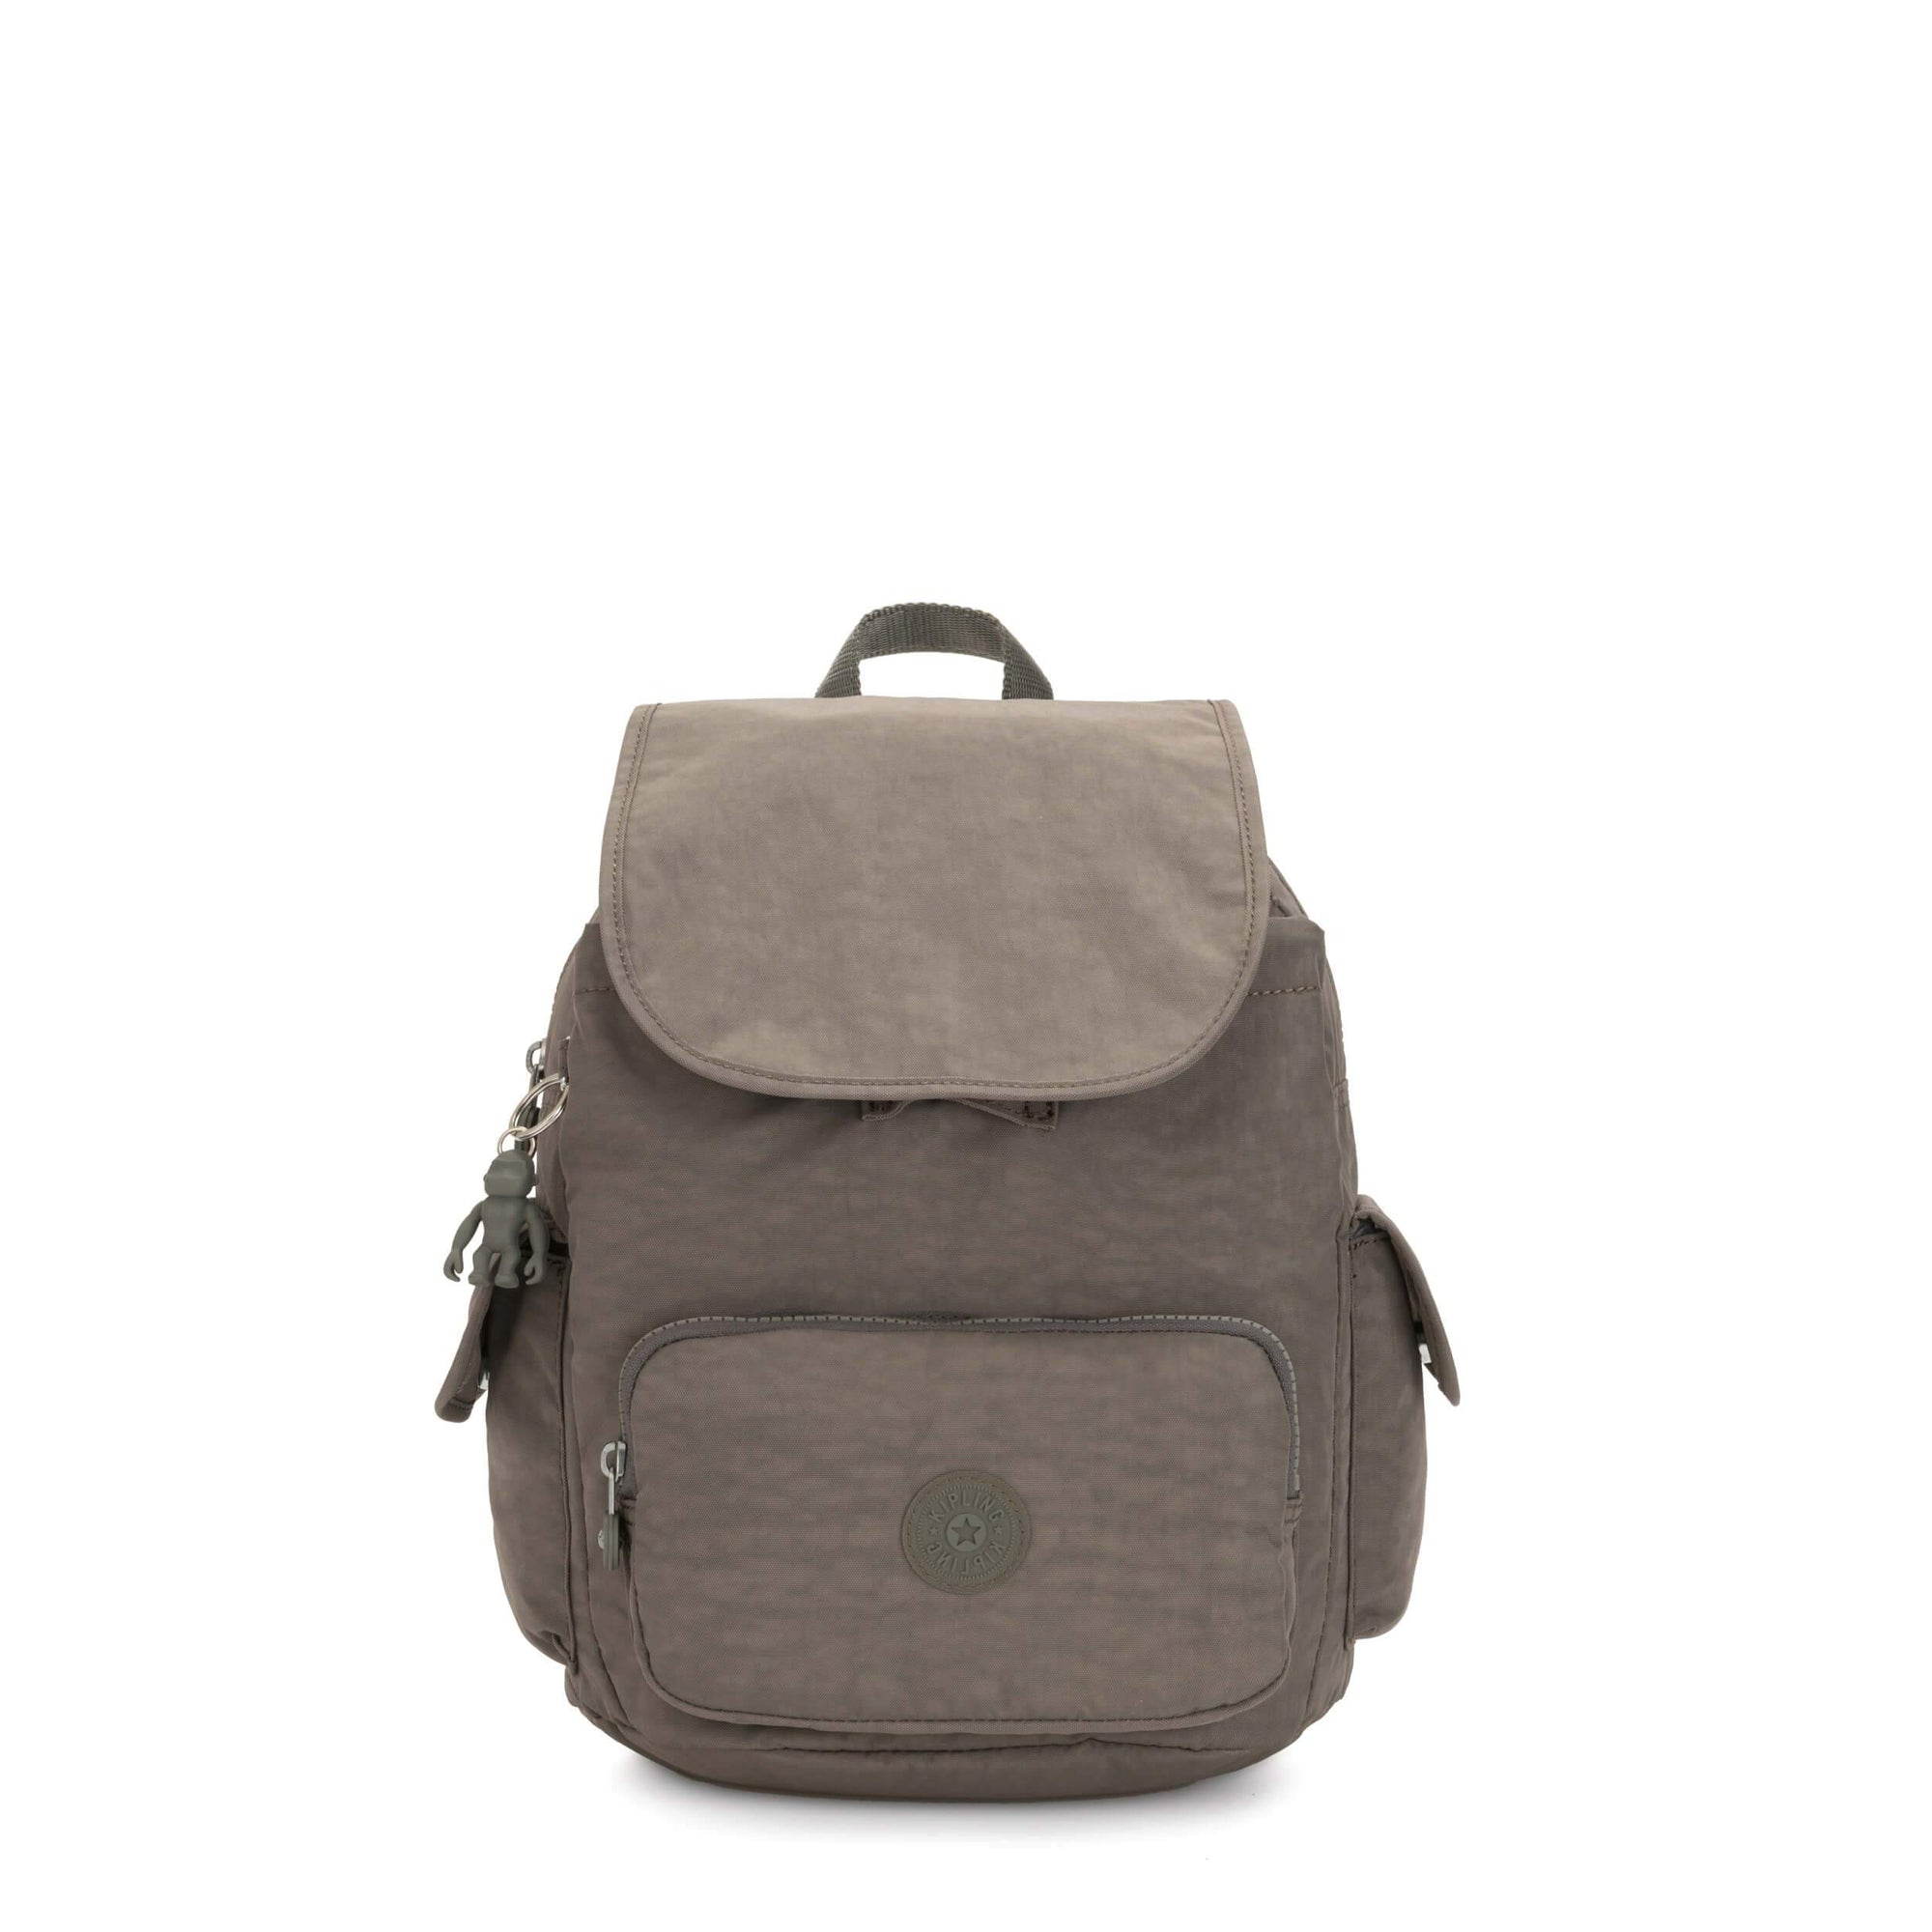 Backpack Kipling City Pack S Seagrass